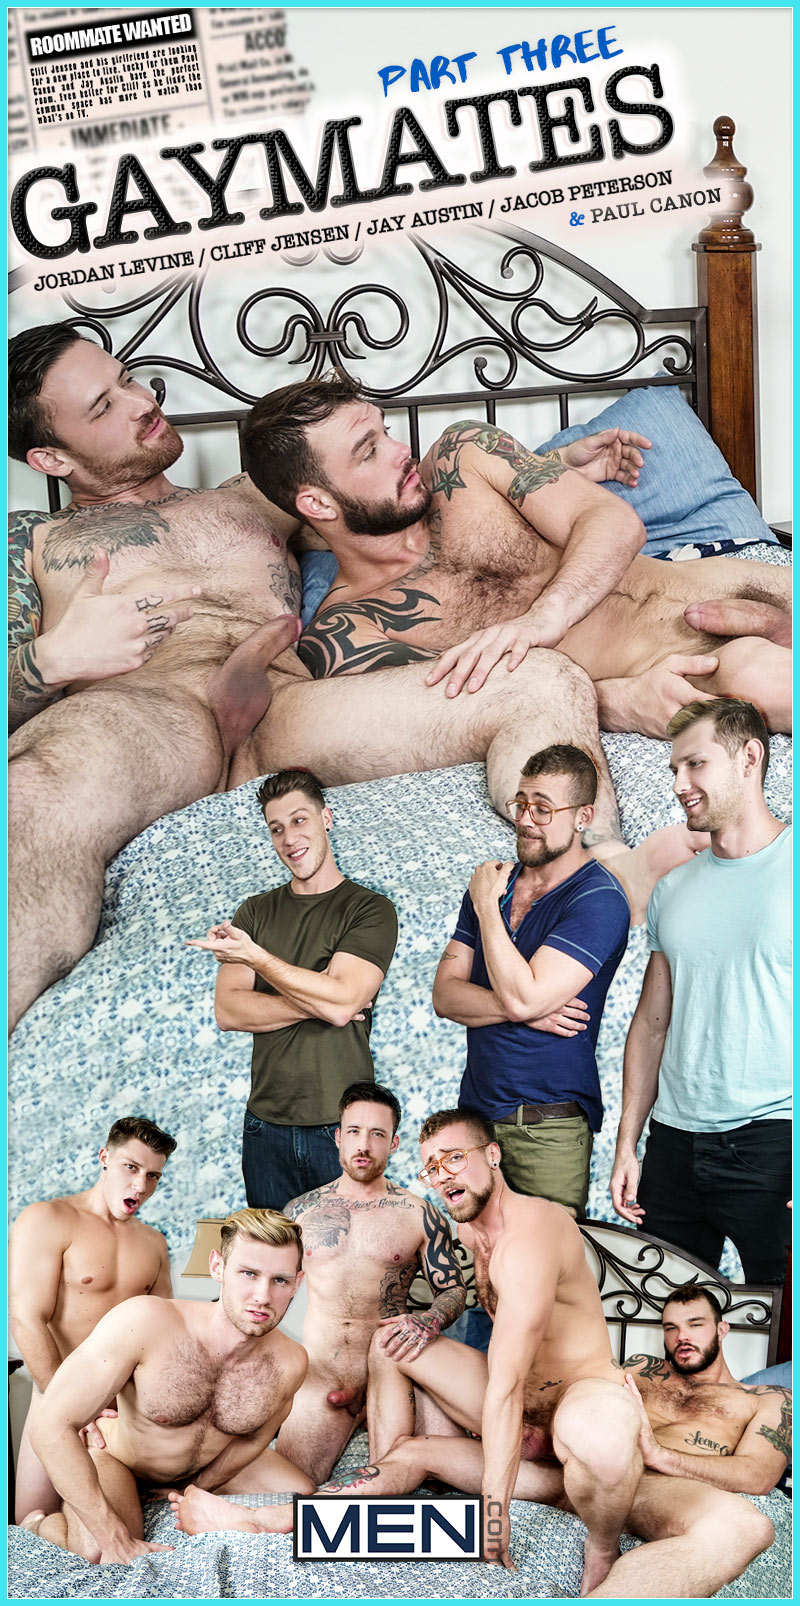 Gaymates, Part 3 (Jordan Levine, Cliff Jensen, Jay Austin, Jacob Peterson and Paul Canon) at JizzOrgy